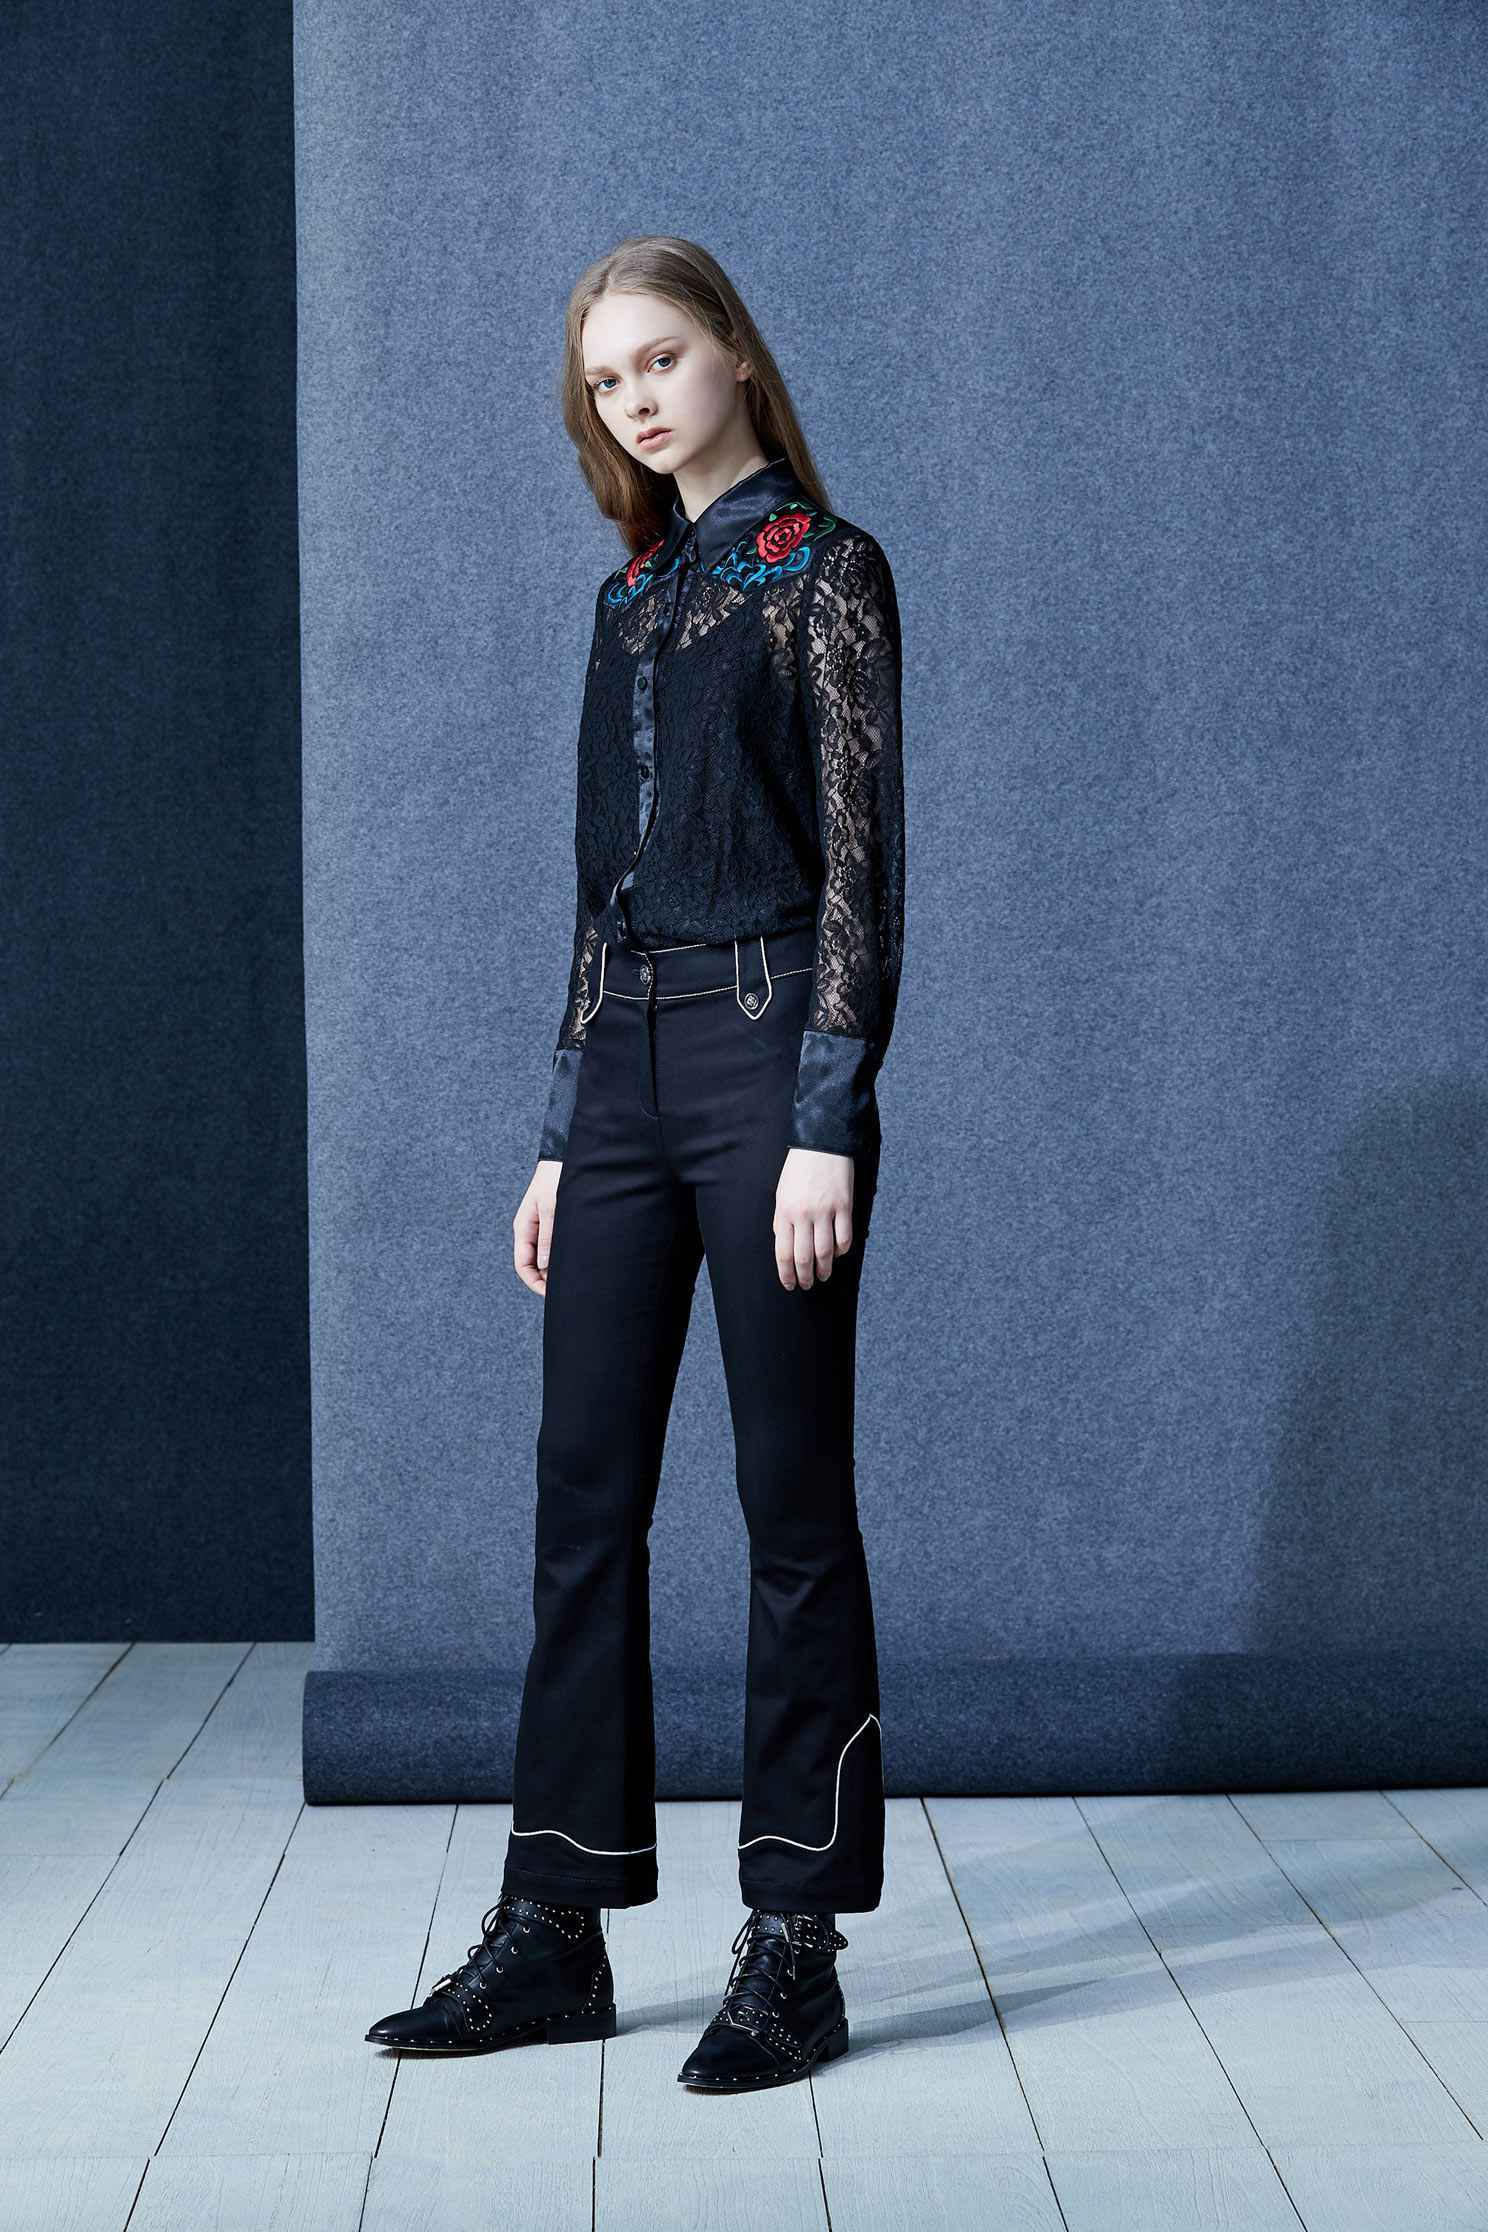 Embroidered lace shirt,embroidery,刺繡上衣,embroidered,繡花上衣,Lace,Laced Top,Blouse,長袖上衣,黑色上衣